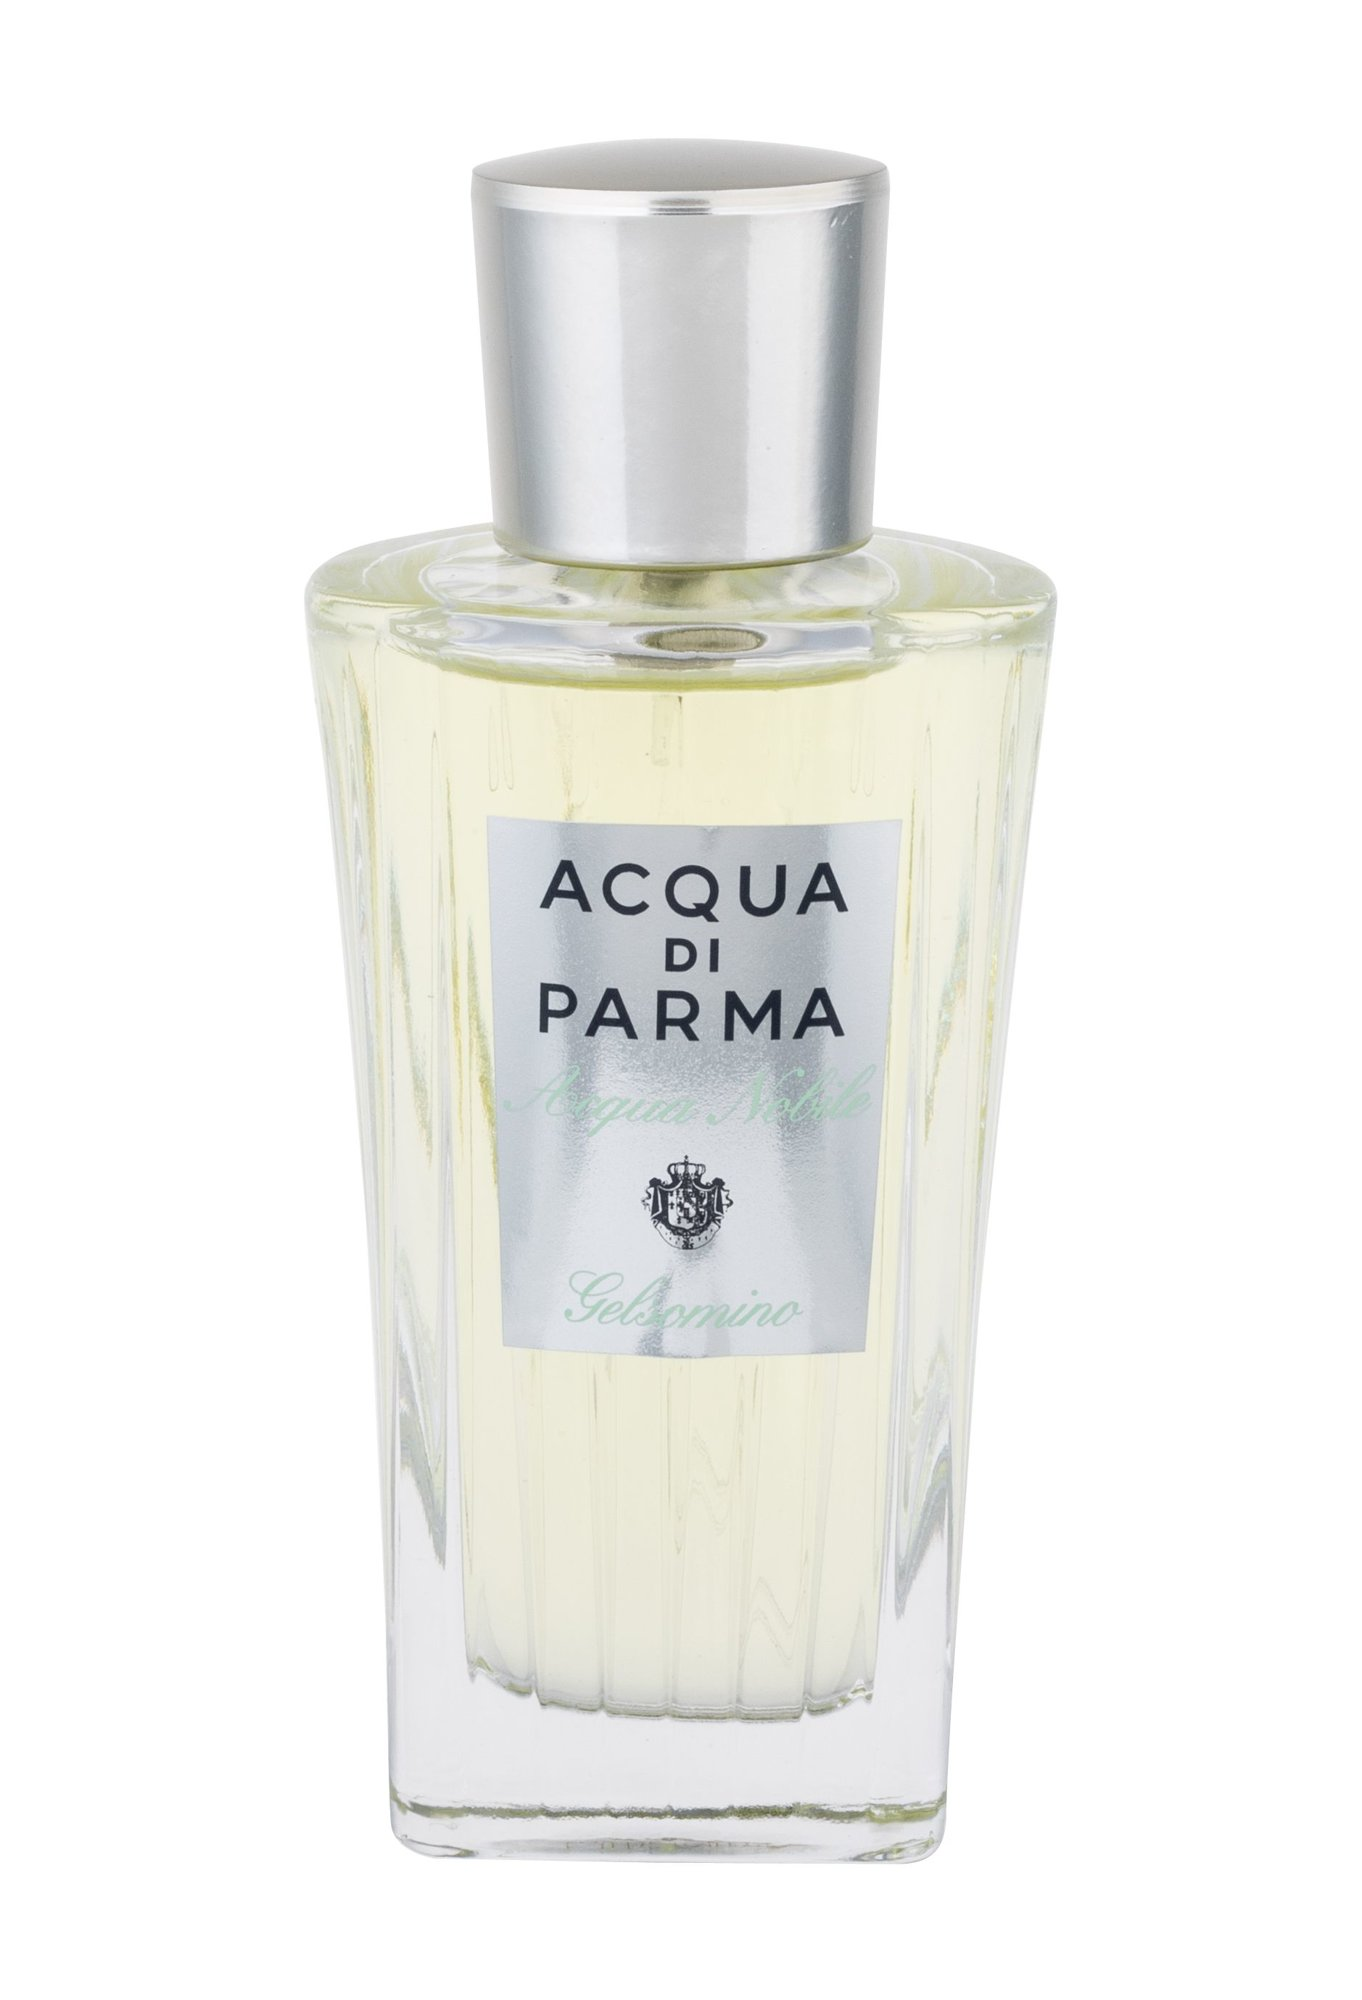 Acqua di Parma Acqua Nobile Gelsomino EDT 75ml